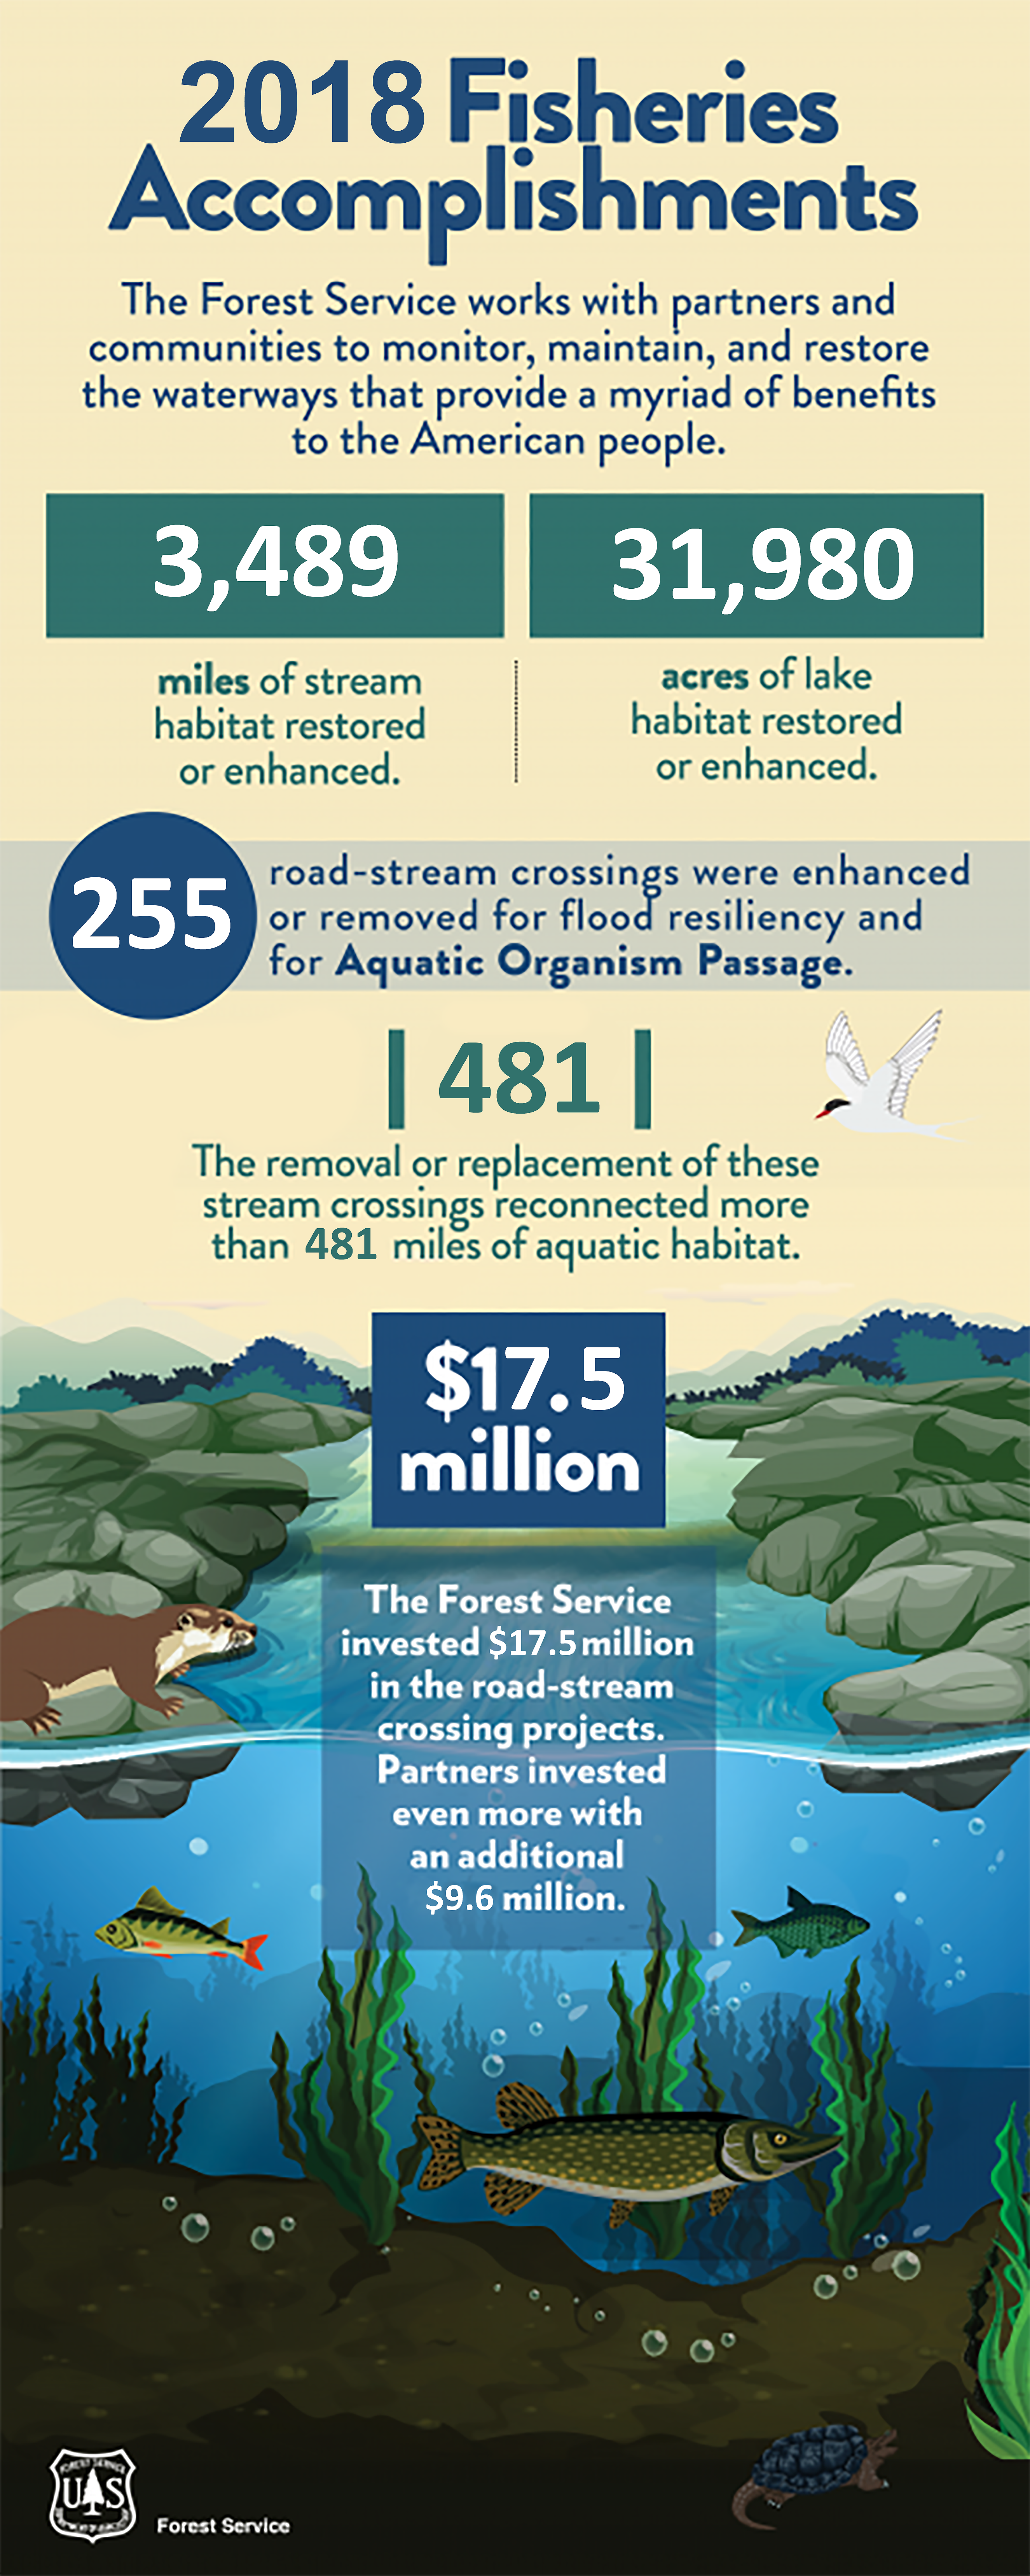 2018 Fisheries Accomplishments graphic